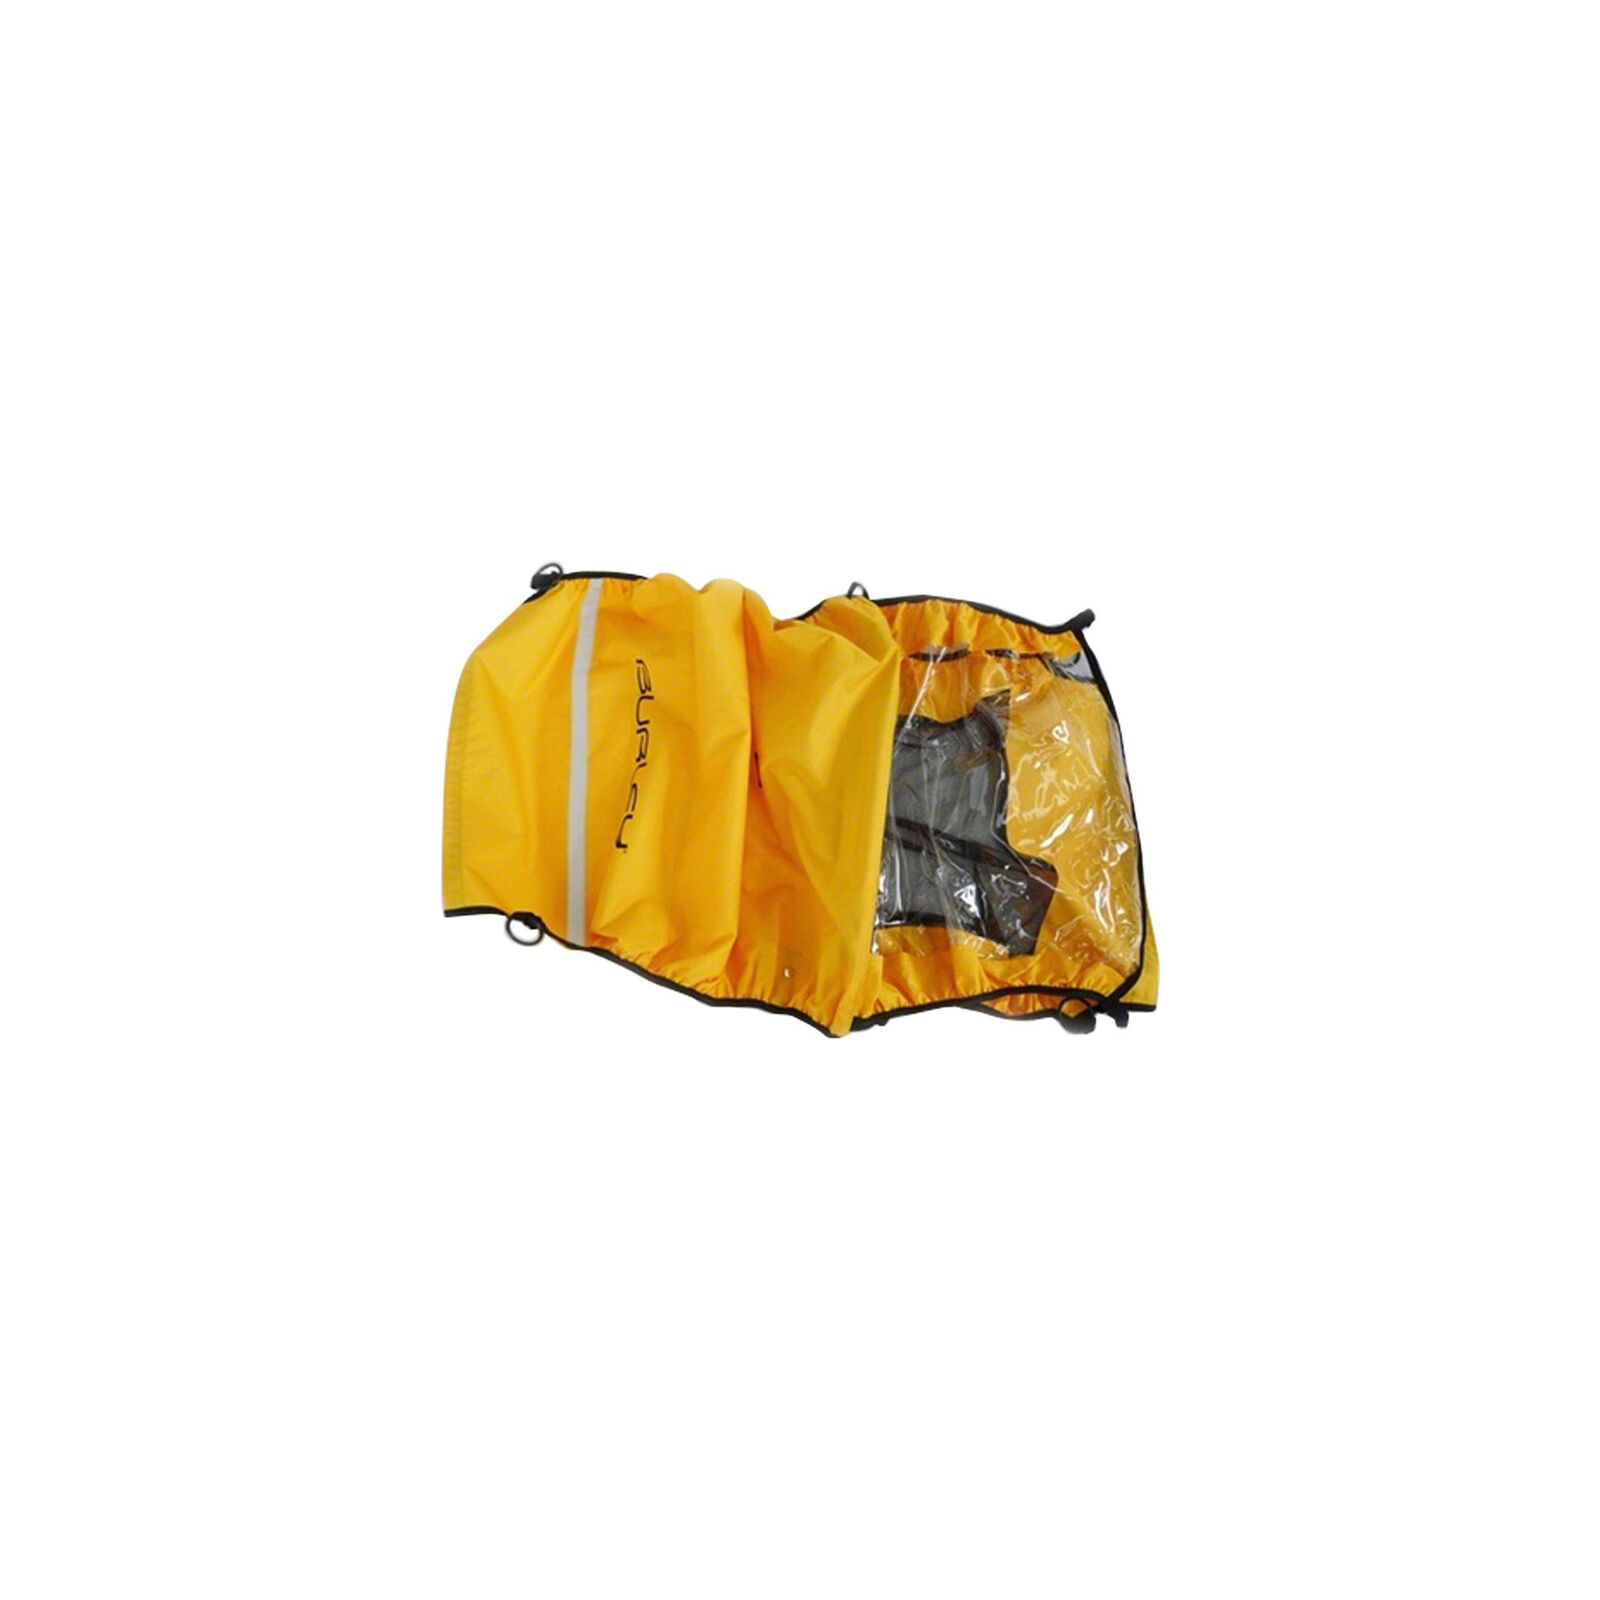 Burley Bee Cover: Bee For 2008-2013 Bee Cover: Models, Gelb 89c6e3